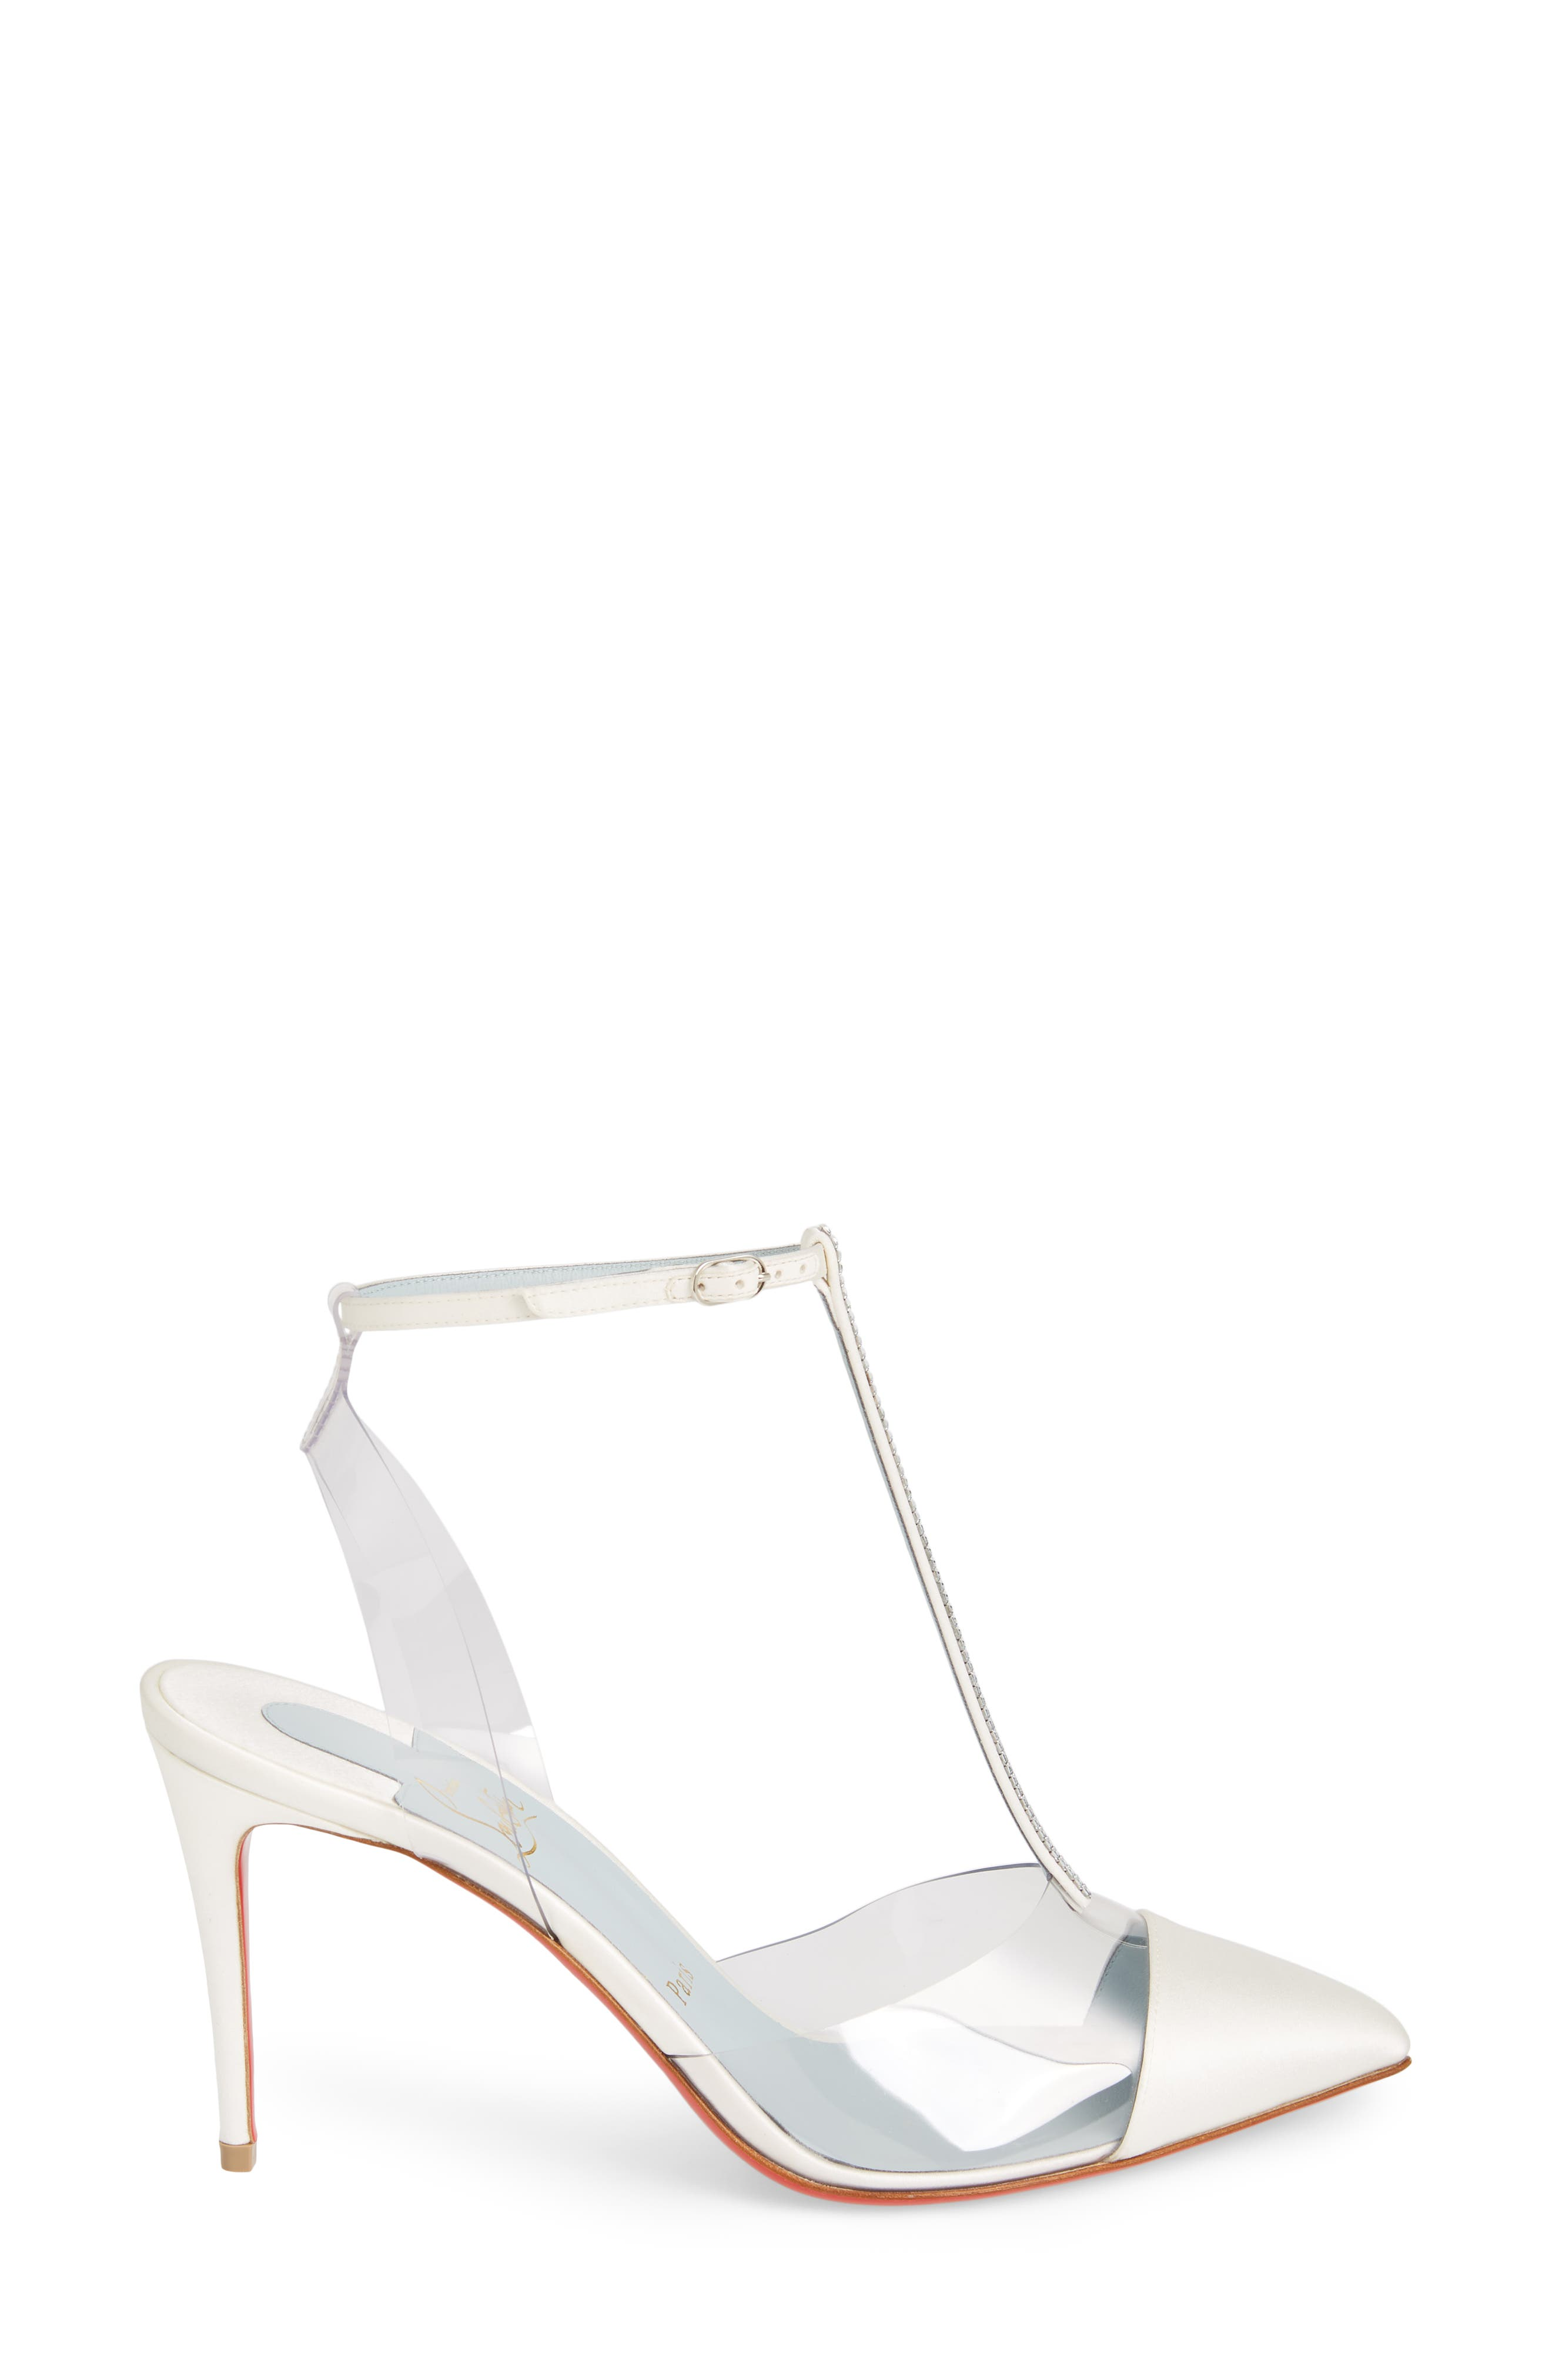 CHRISTIAN LOUBOUTIN,                             Nosy Jewel Clear Pump,                             Alternate thumbnail 3, color,                             OFF WHITE